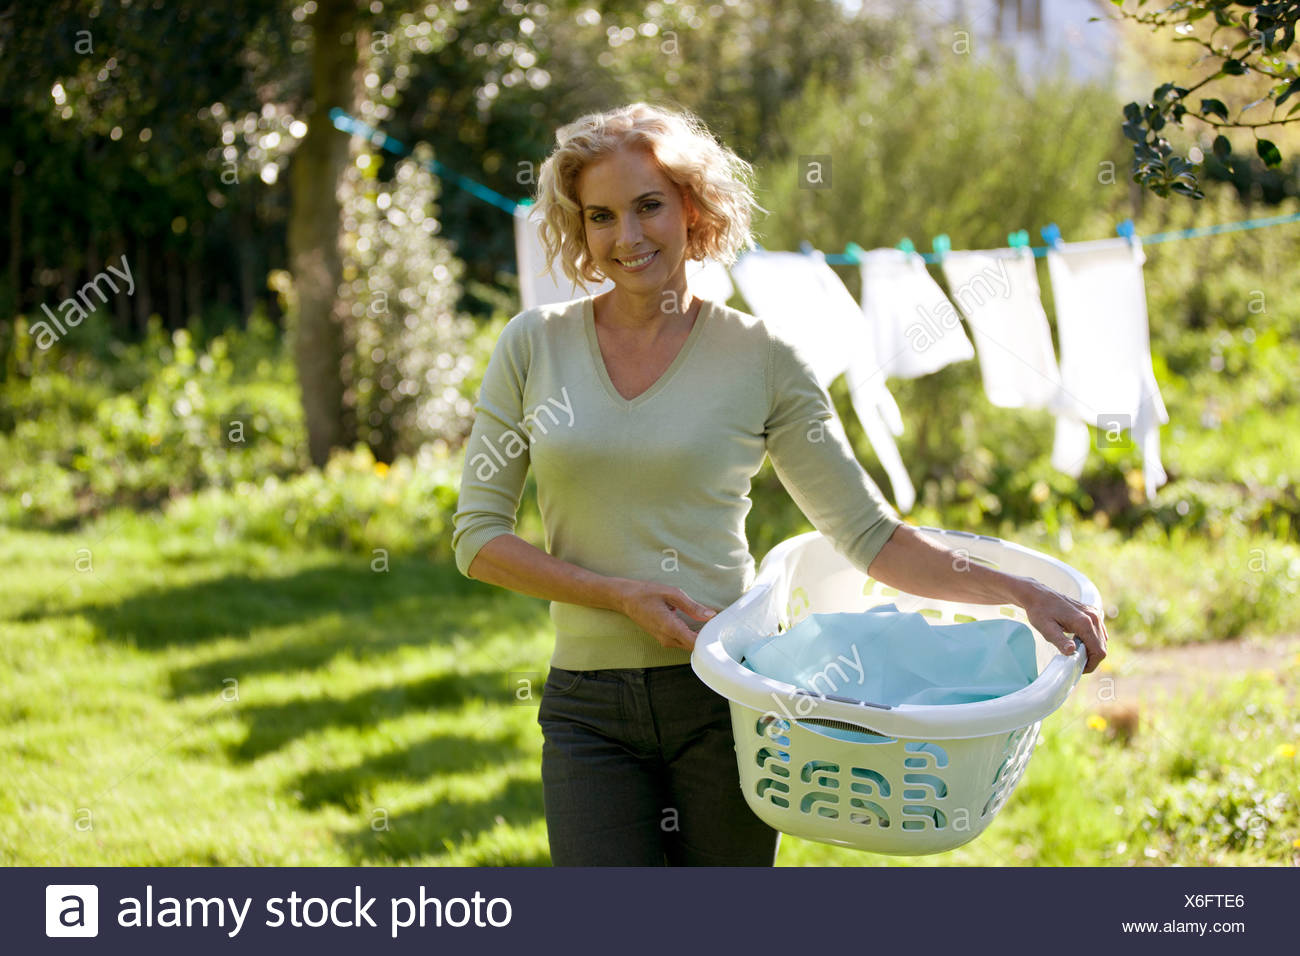 A young woman standing in front of a tenant un panier de blanchisserie Photo Stock